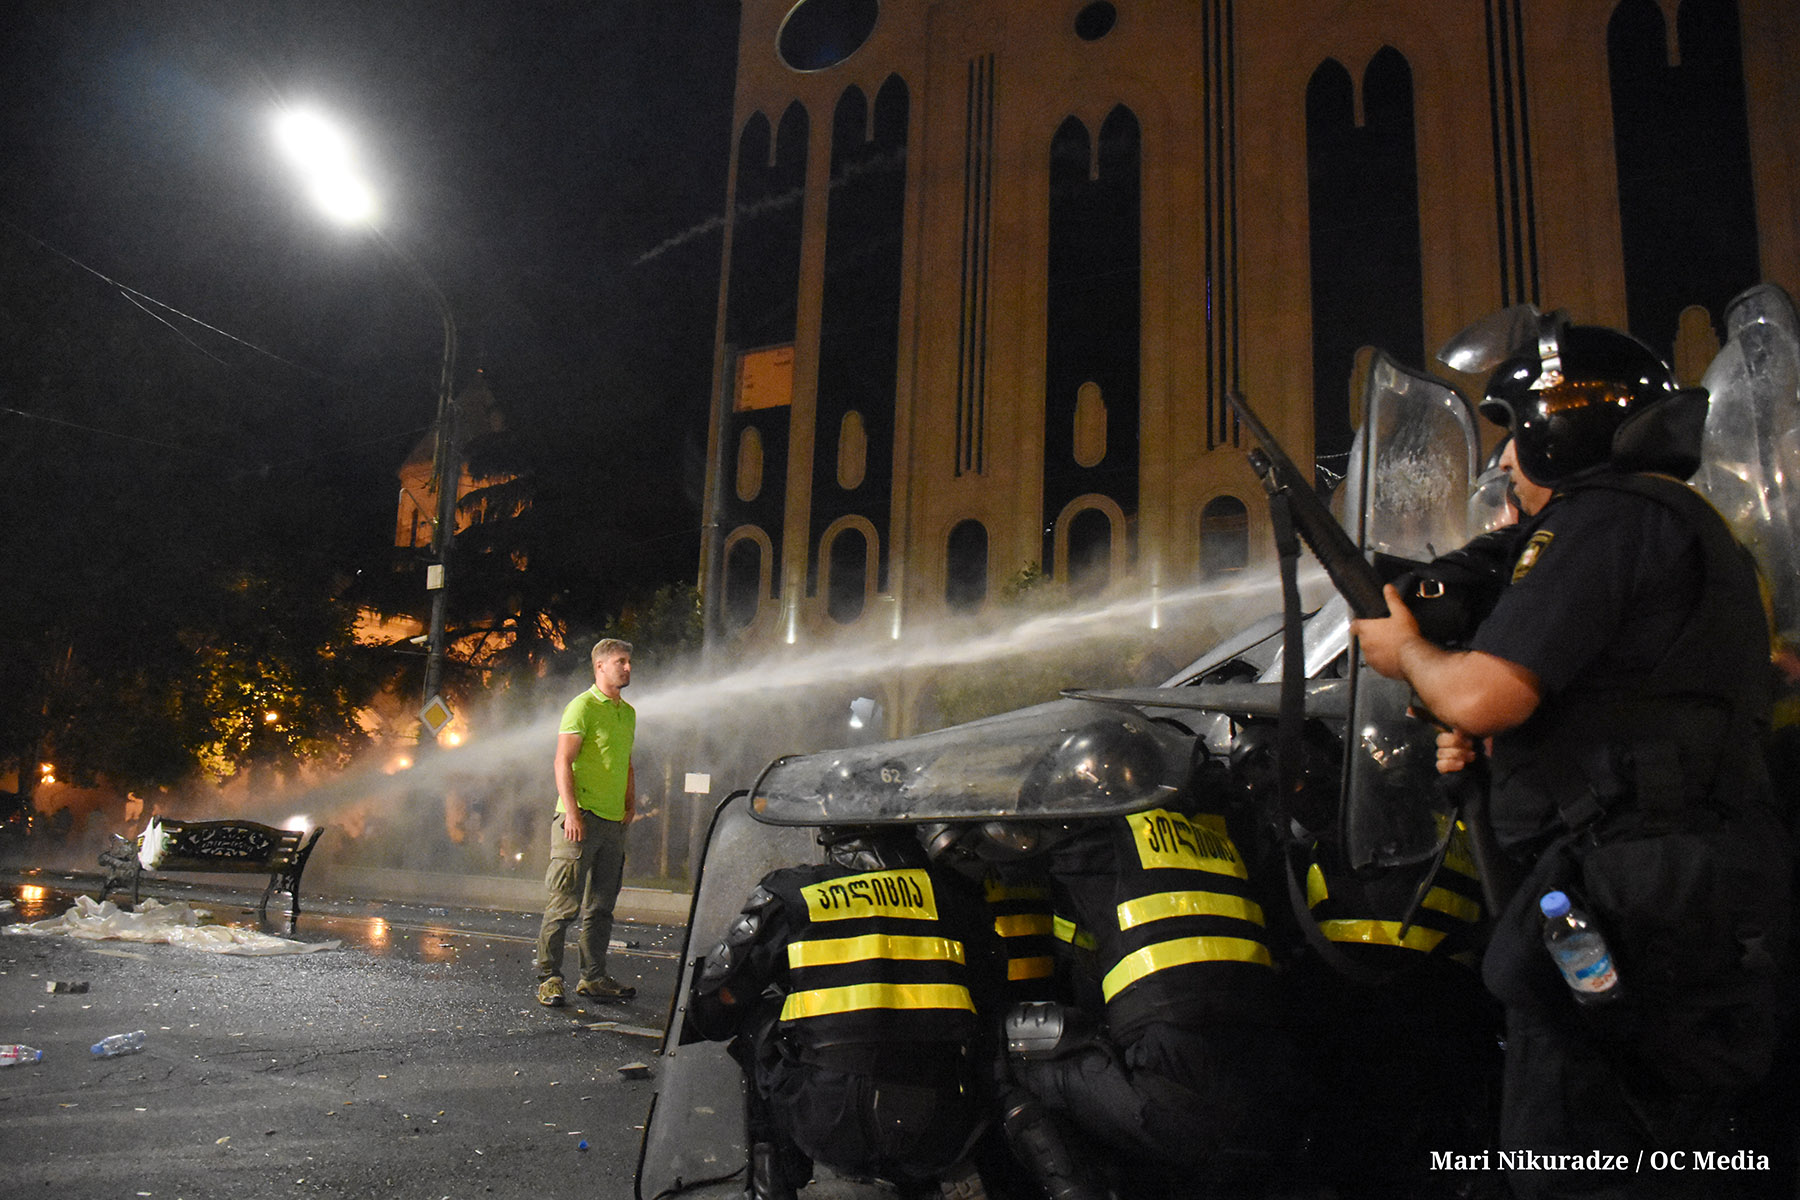 Police deployed a water cannon, tear gas, and rubber bullets against protesters. Photo: Mariam Nikuradze/OC Media.